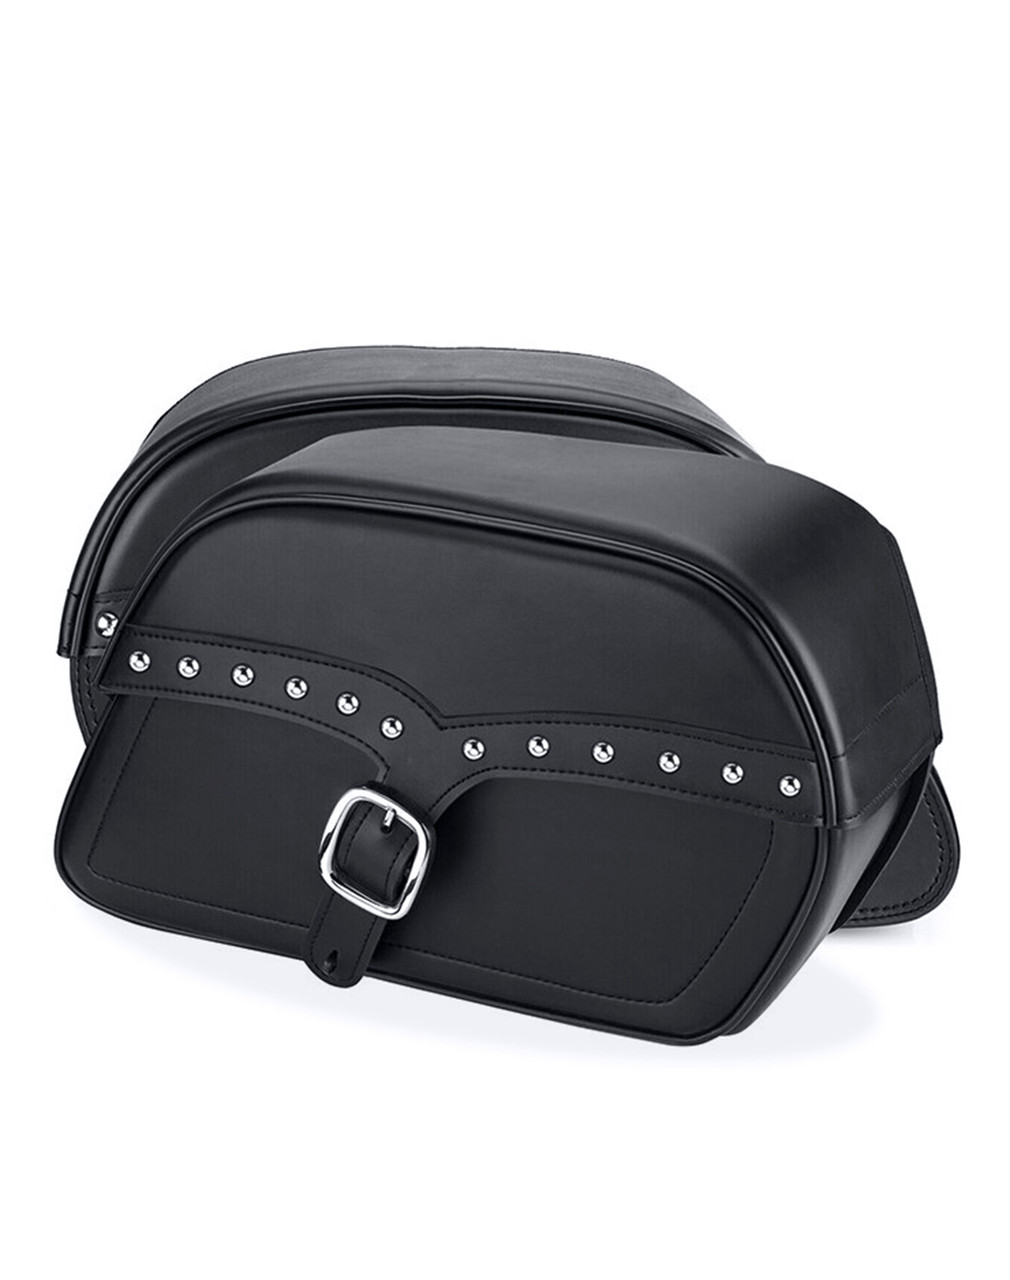 Triumph Rocket III Roadster SS Slanted Studded Large Motorcycle Saddlebags Both Bags View